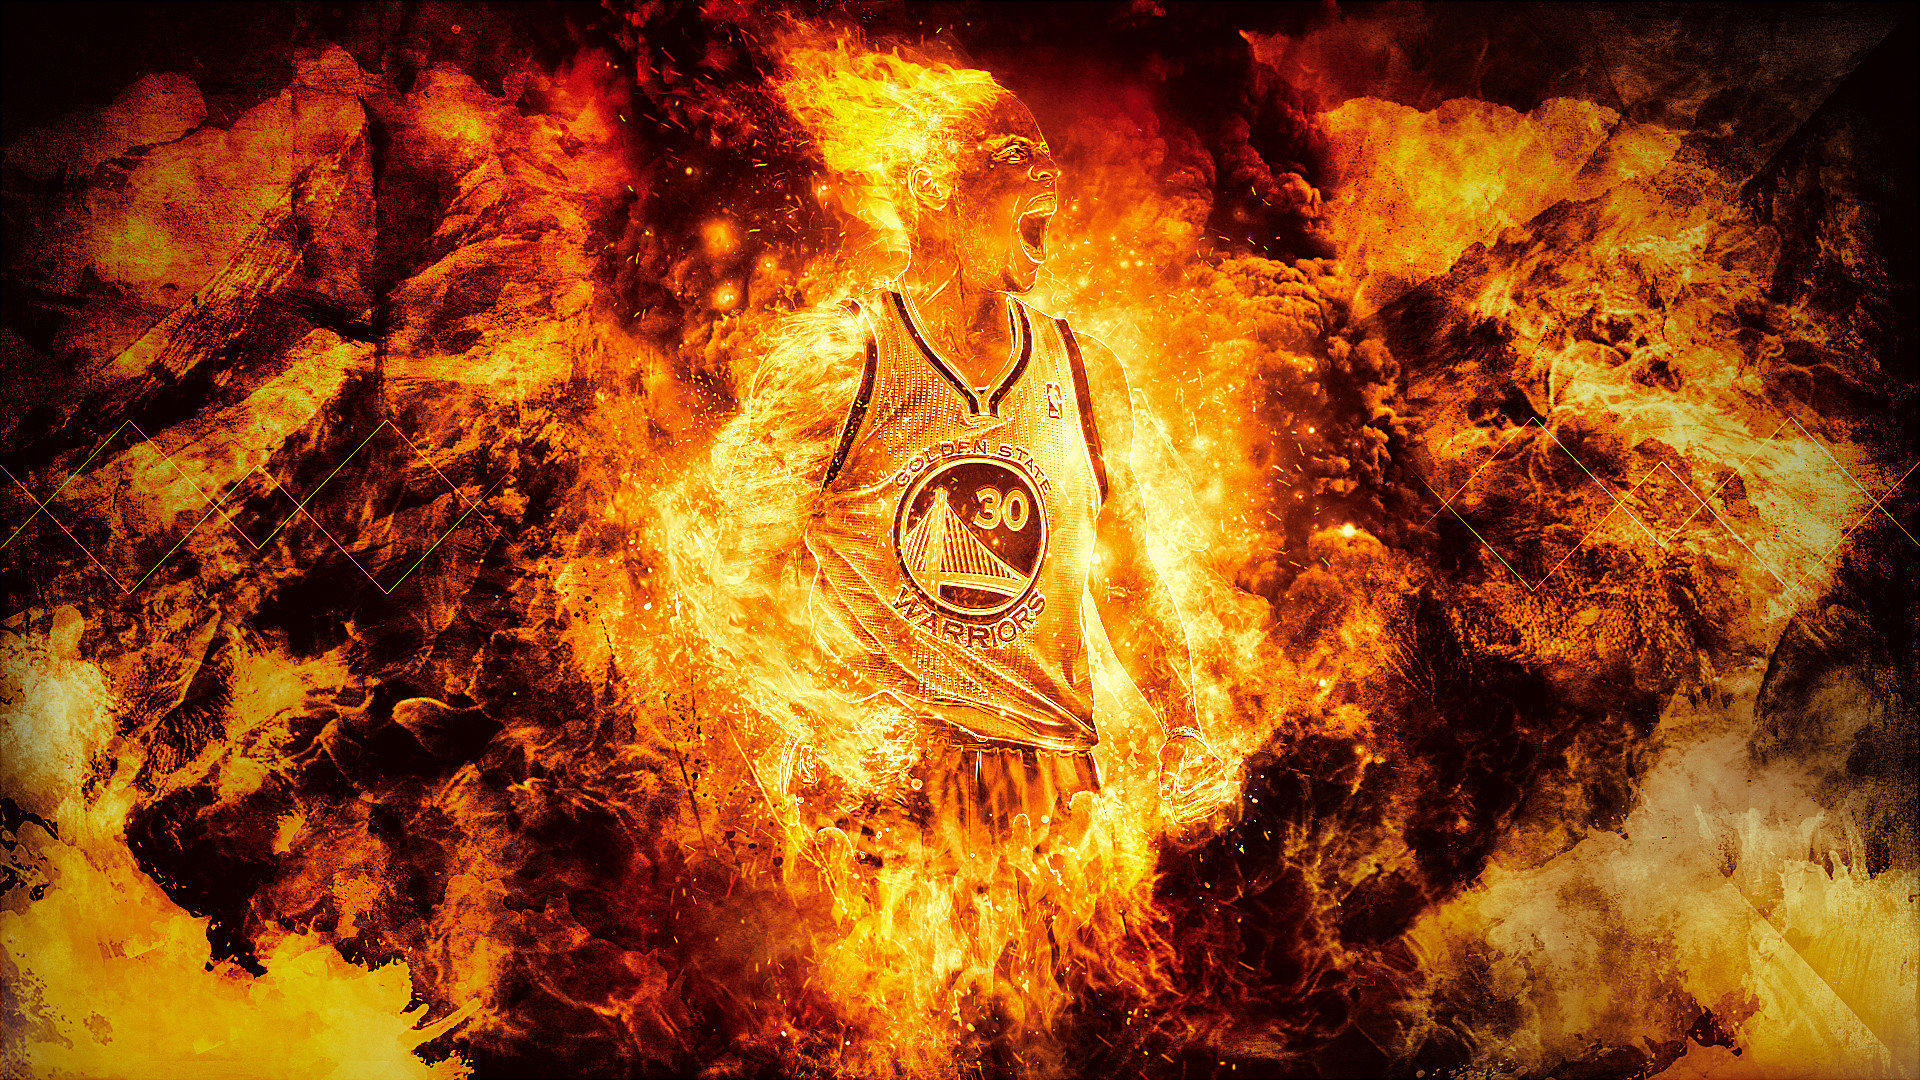 Brandweer Behang Stephen Curry Fire Wallpaper ①